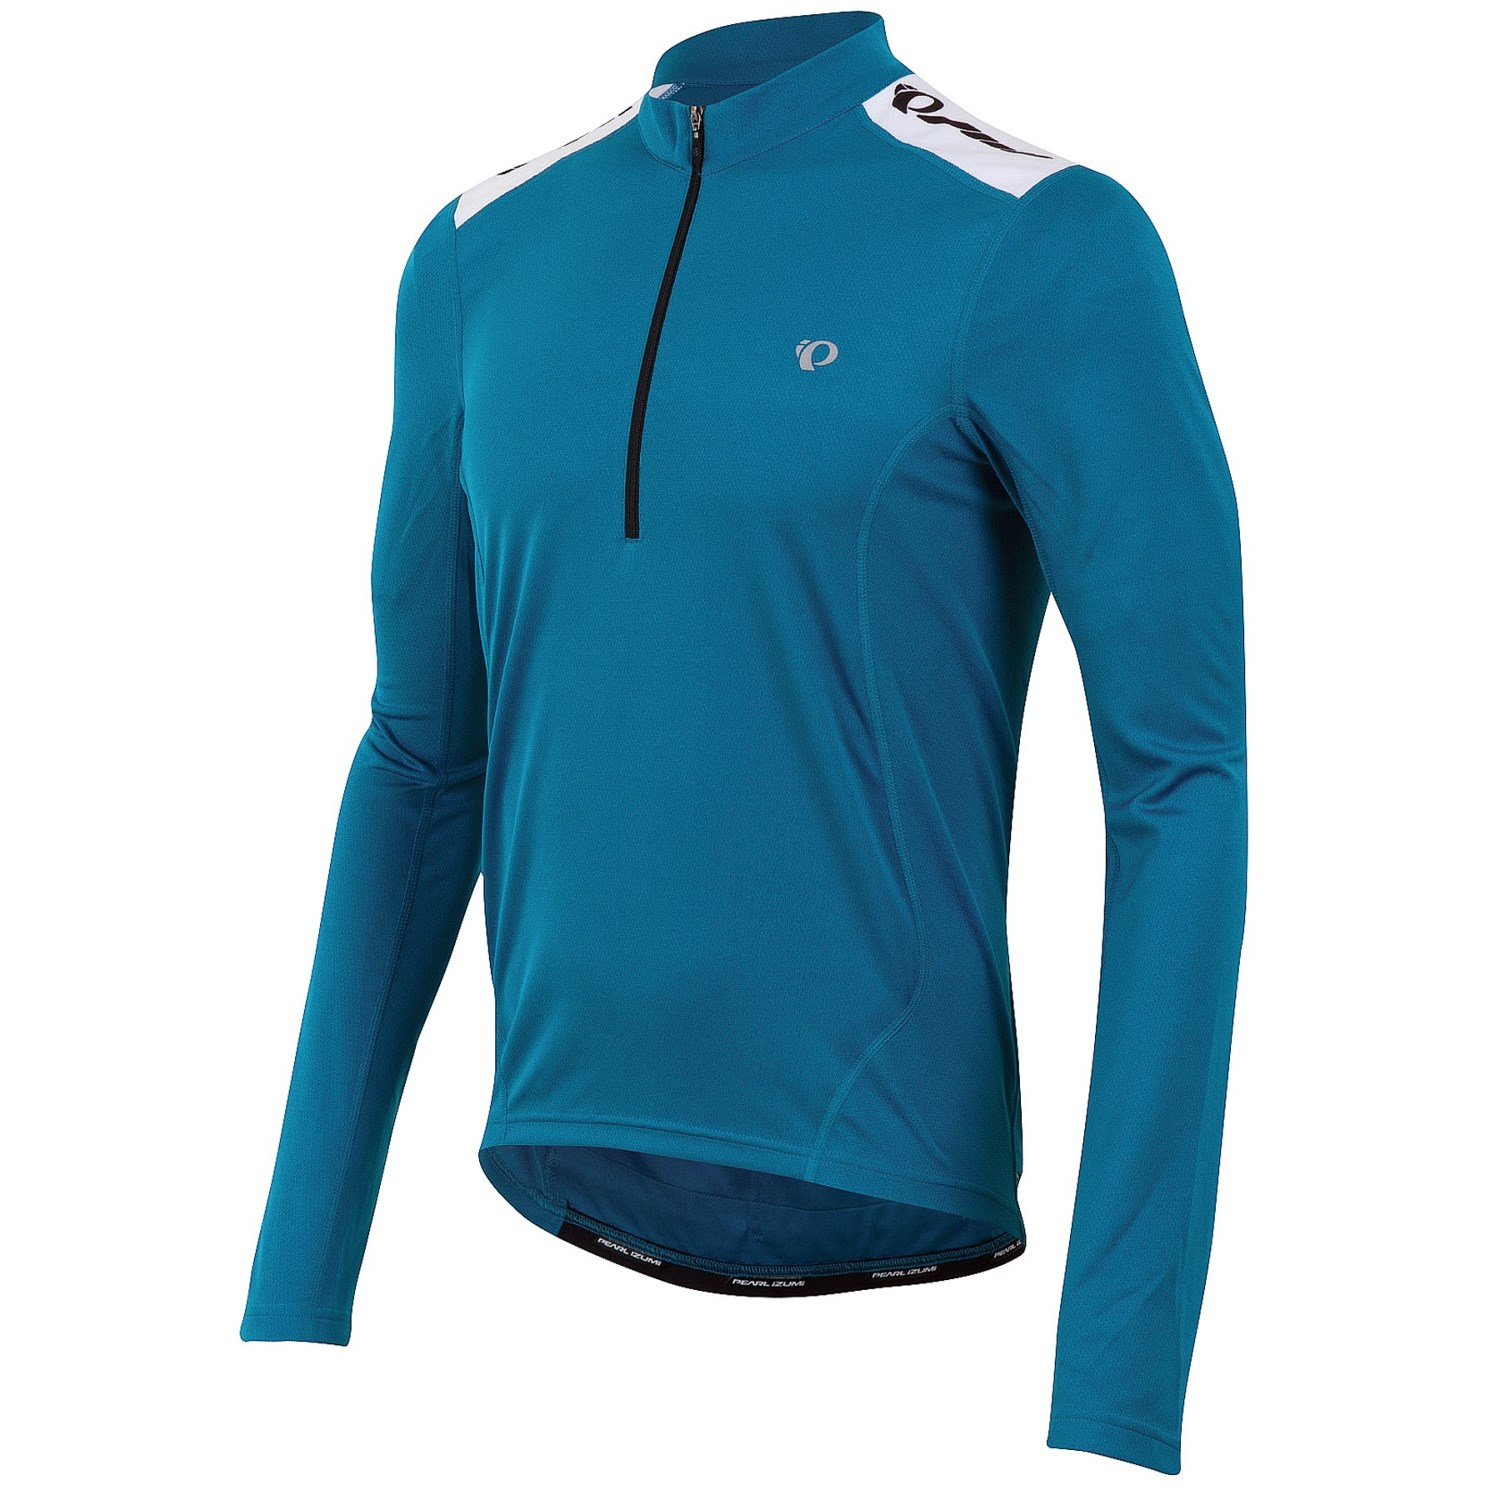 Pearl izumi quest cycling jersey for men save 53 for Pearl izumi cycling shirt